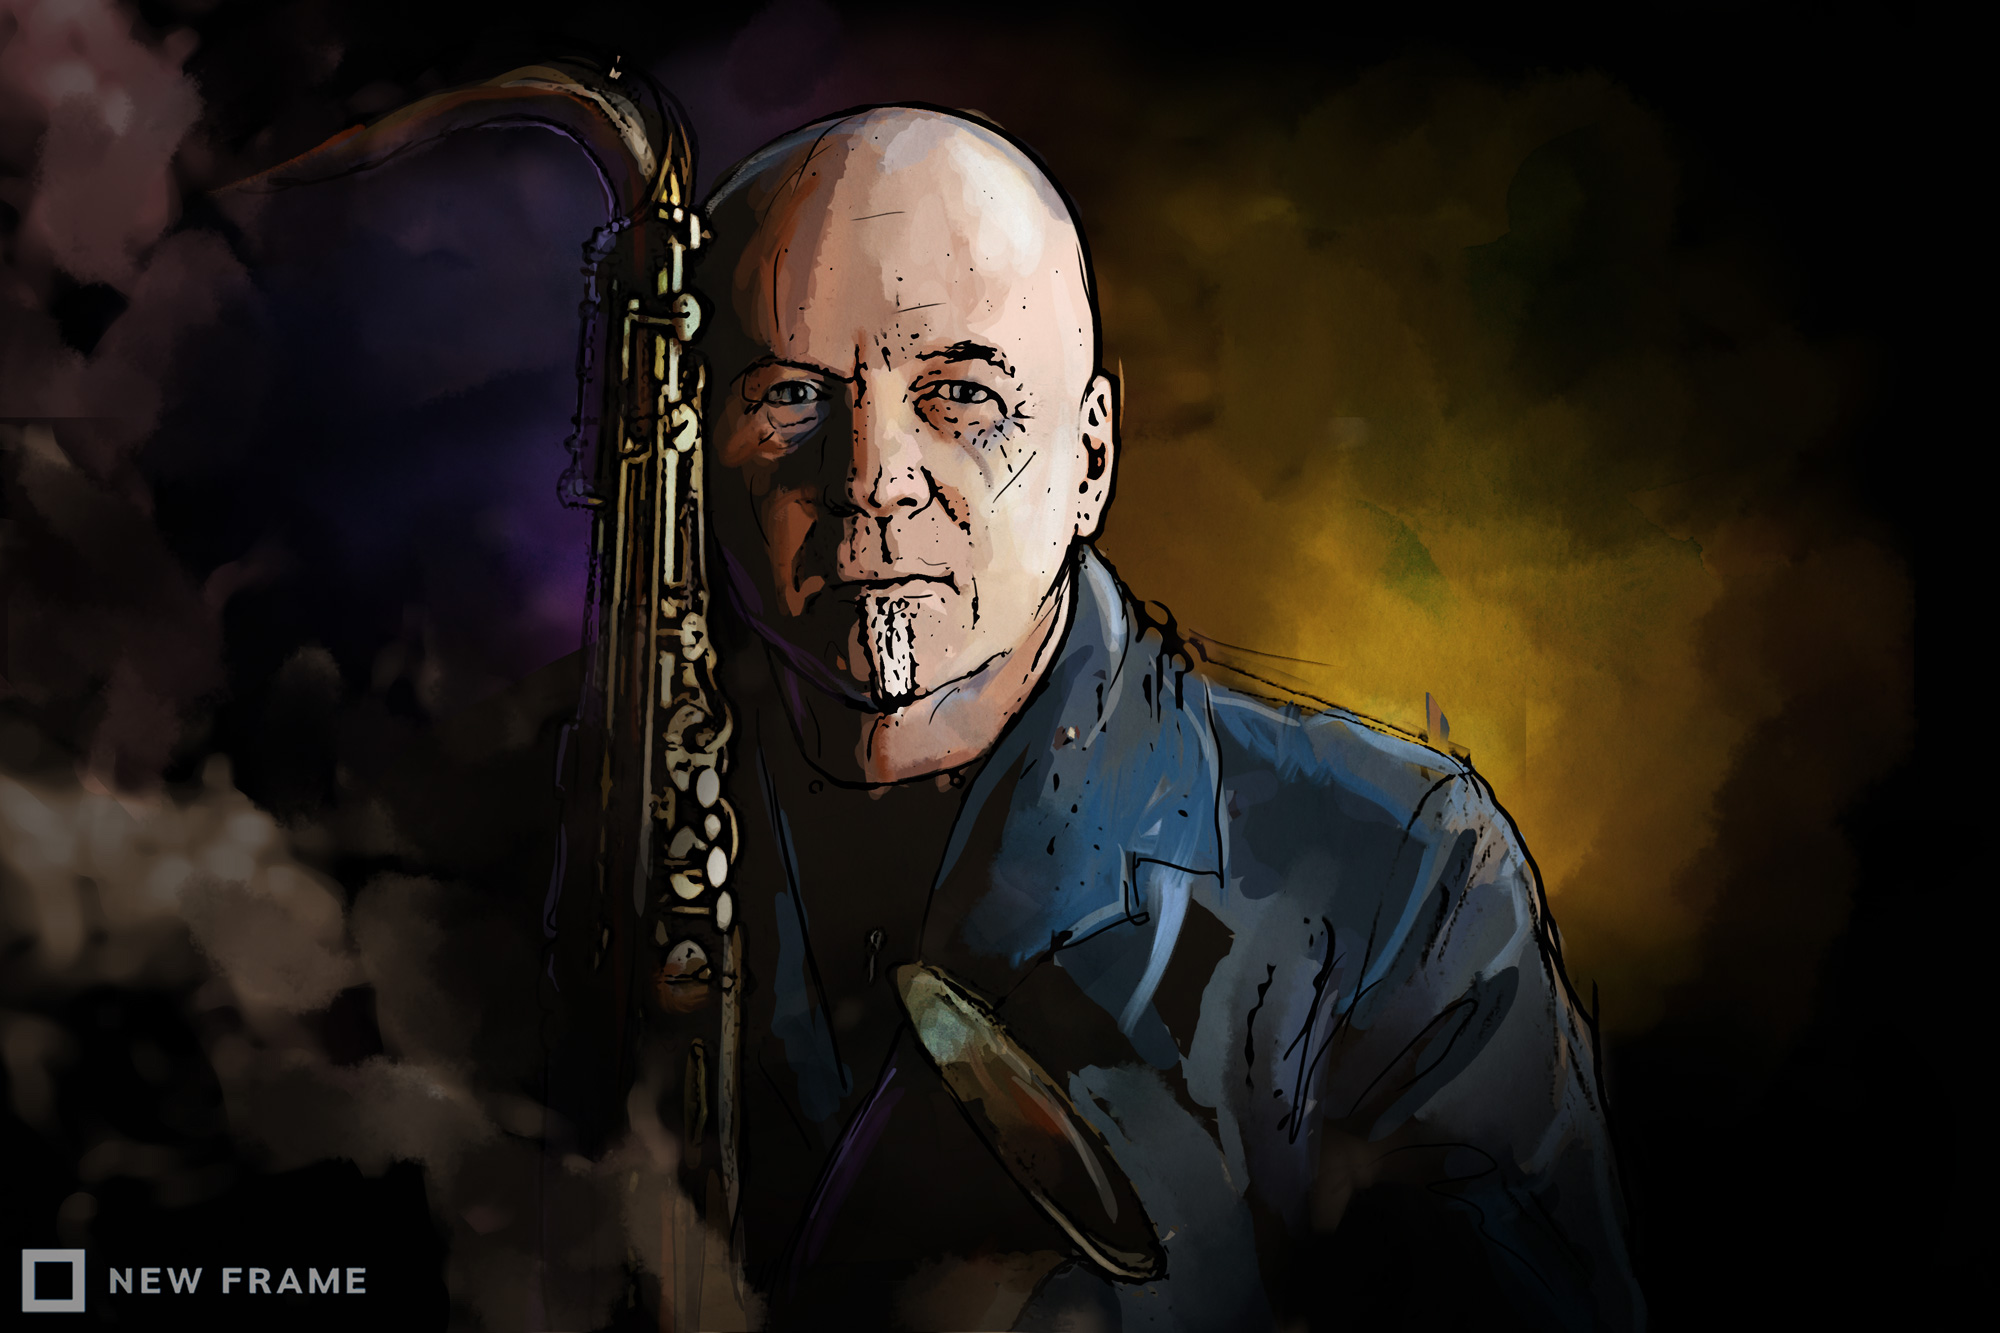 Steve Dyer and the making of his different world : New Frame